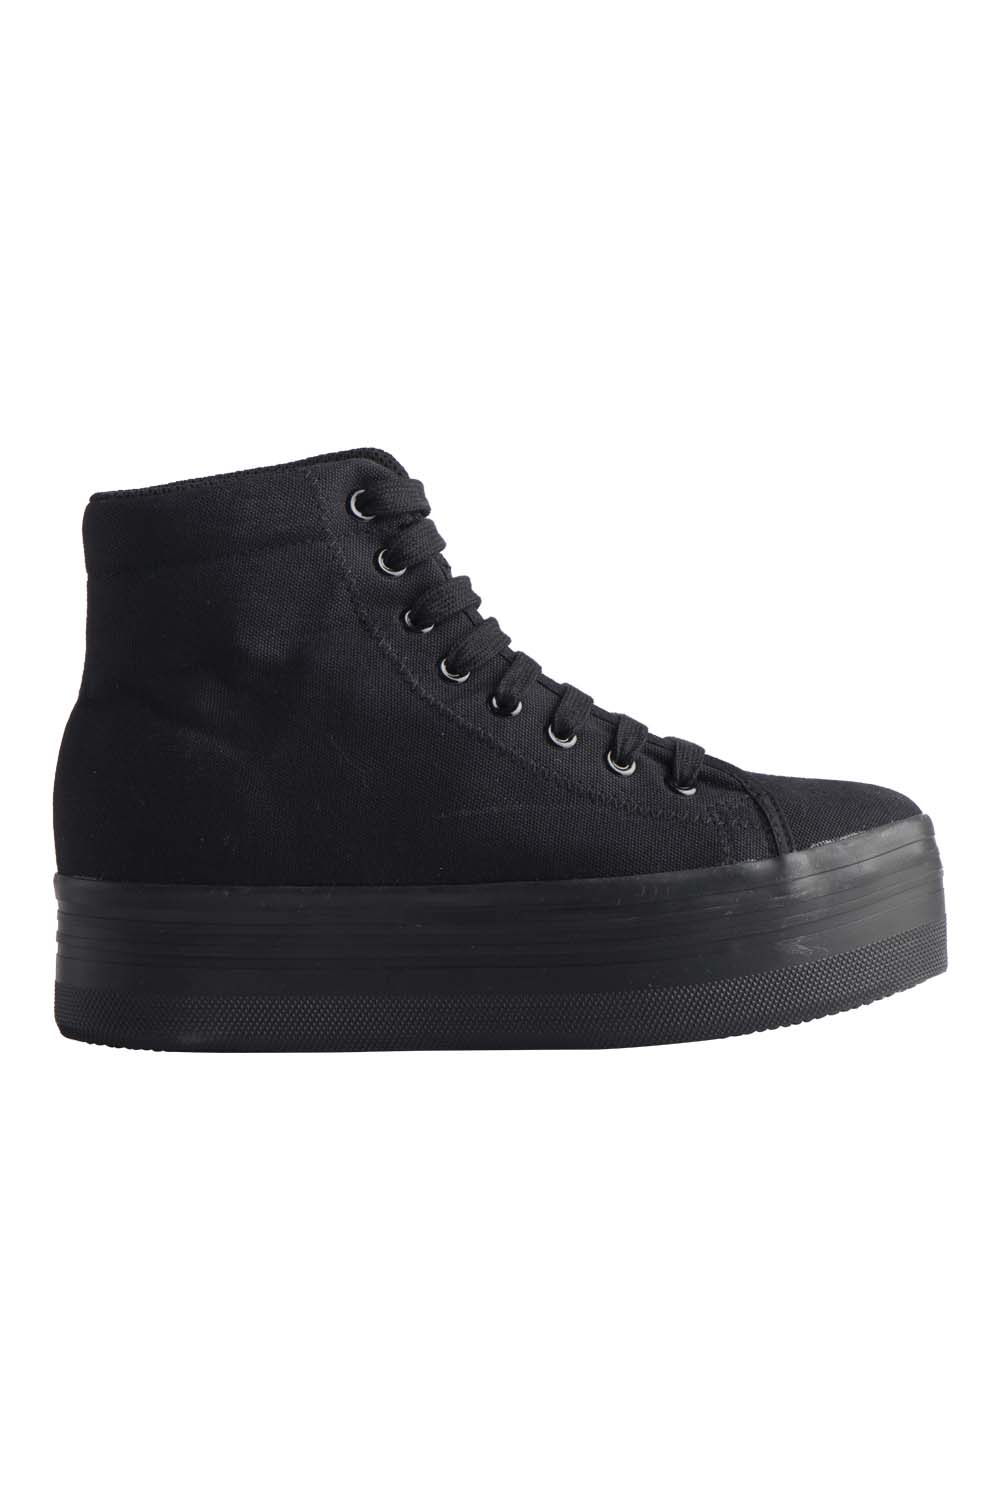 JEFFREY CAMPBELL SNEAKERS - HOMG BLACK BLACK.jpg